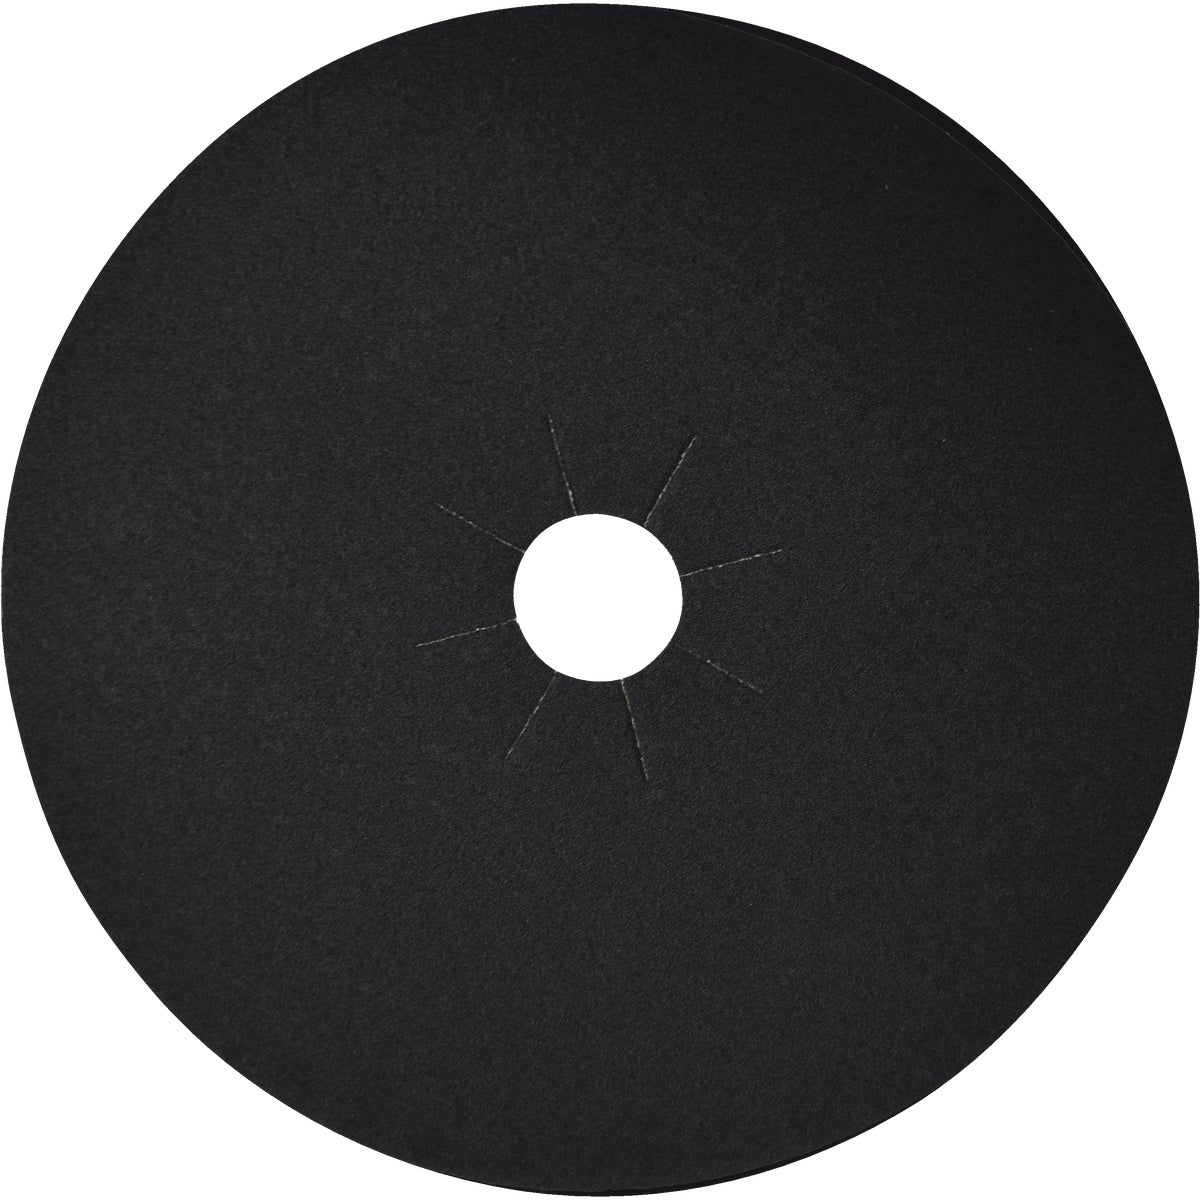 "17"" 80G FLR SANDING DISC - 007-817280 by Virginia Abrasives"